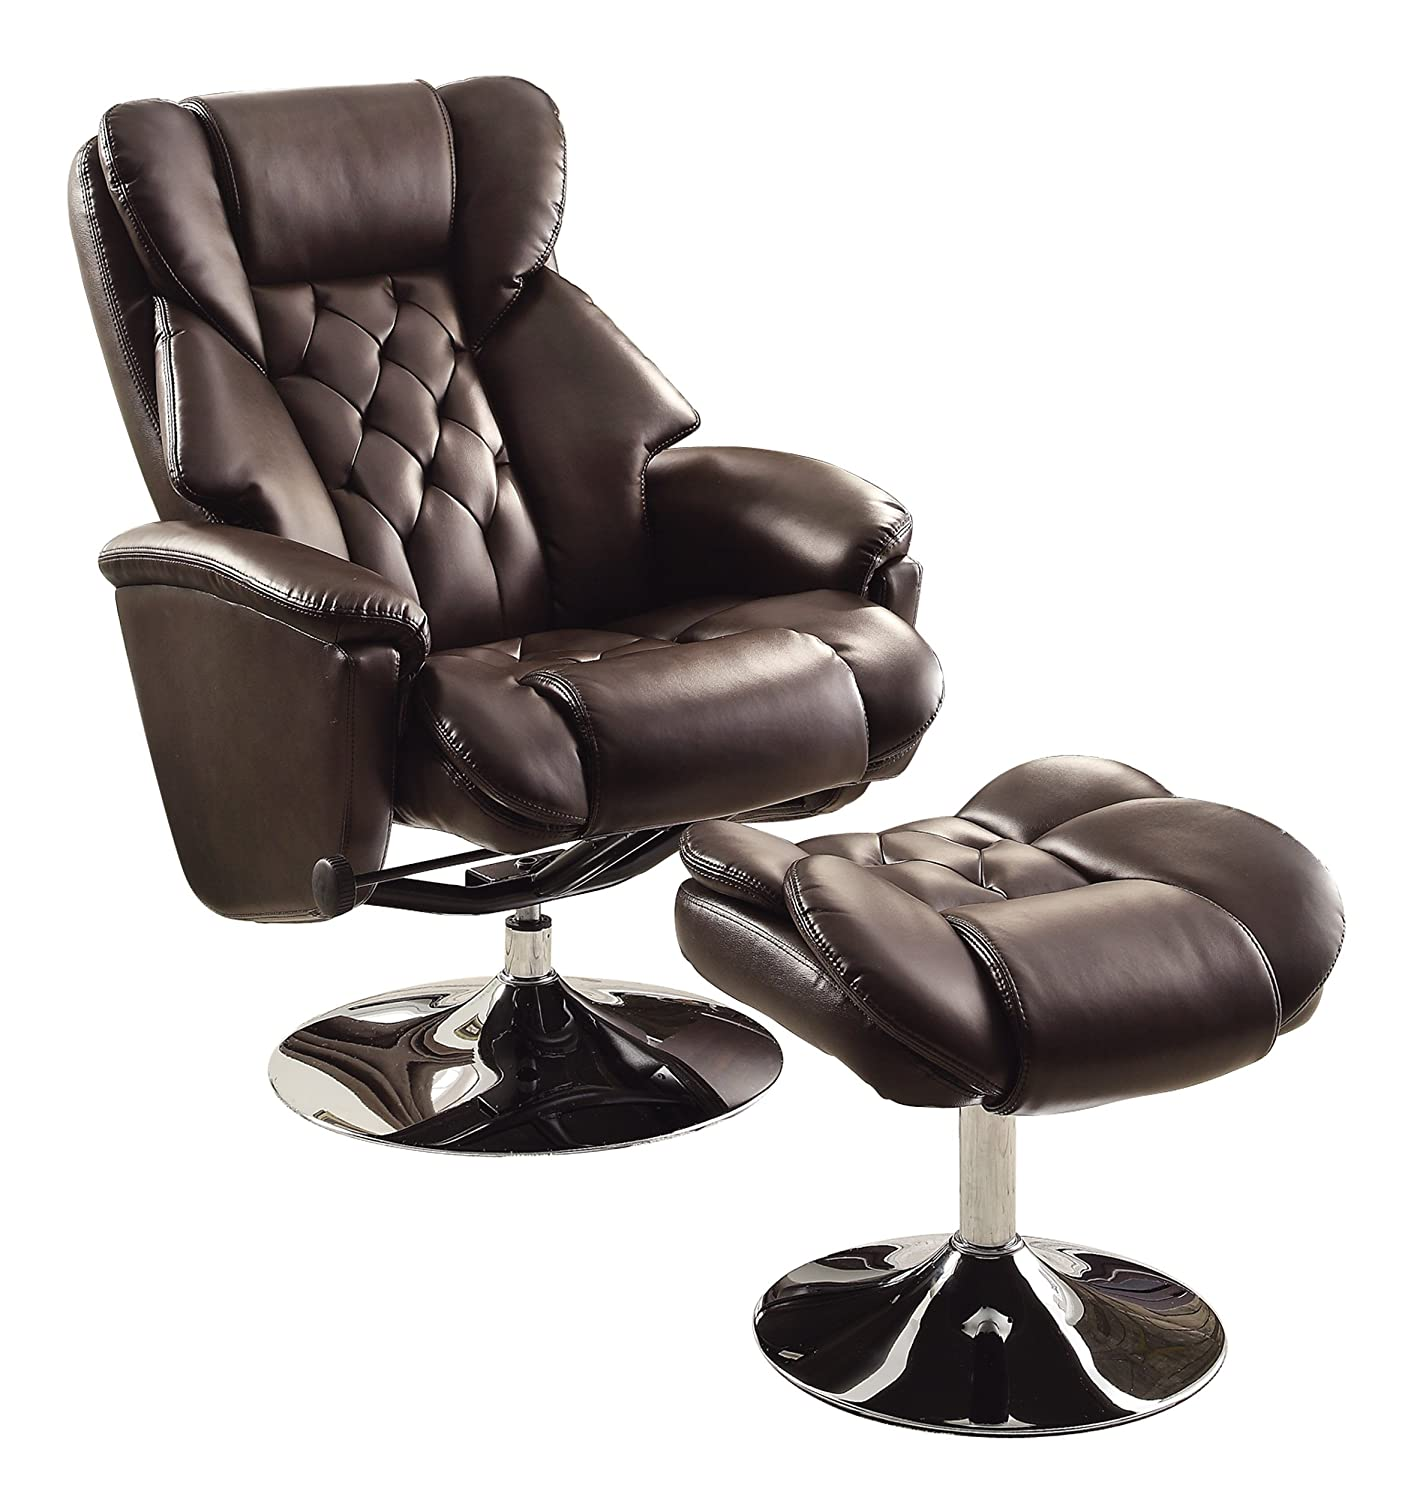 Amazon Homelegance 8548BRW1 Swivel Reclining Chair with – Reclining Chairs with Ottomans